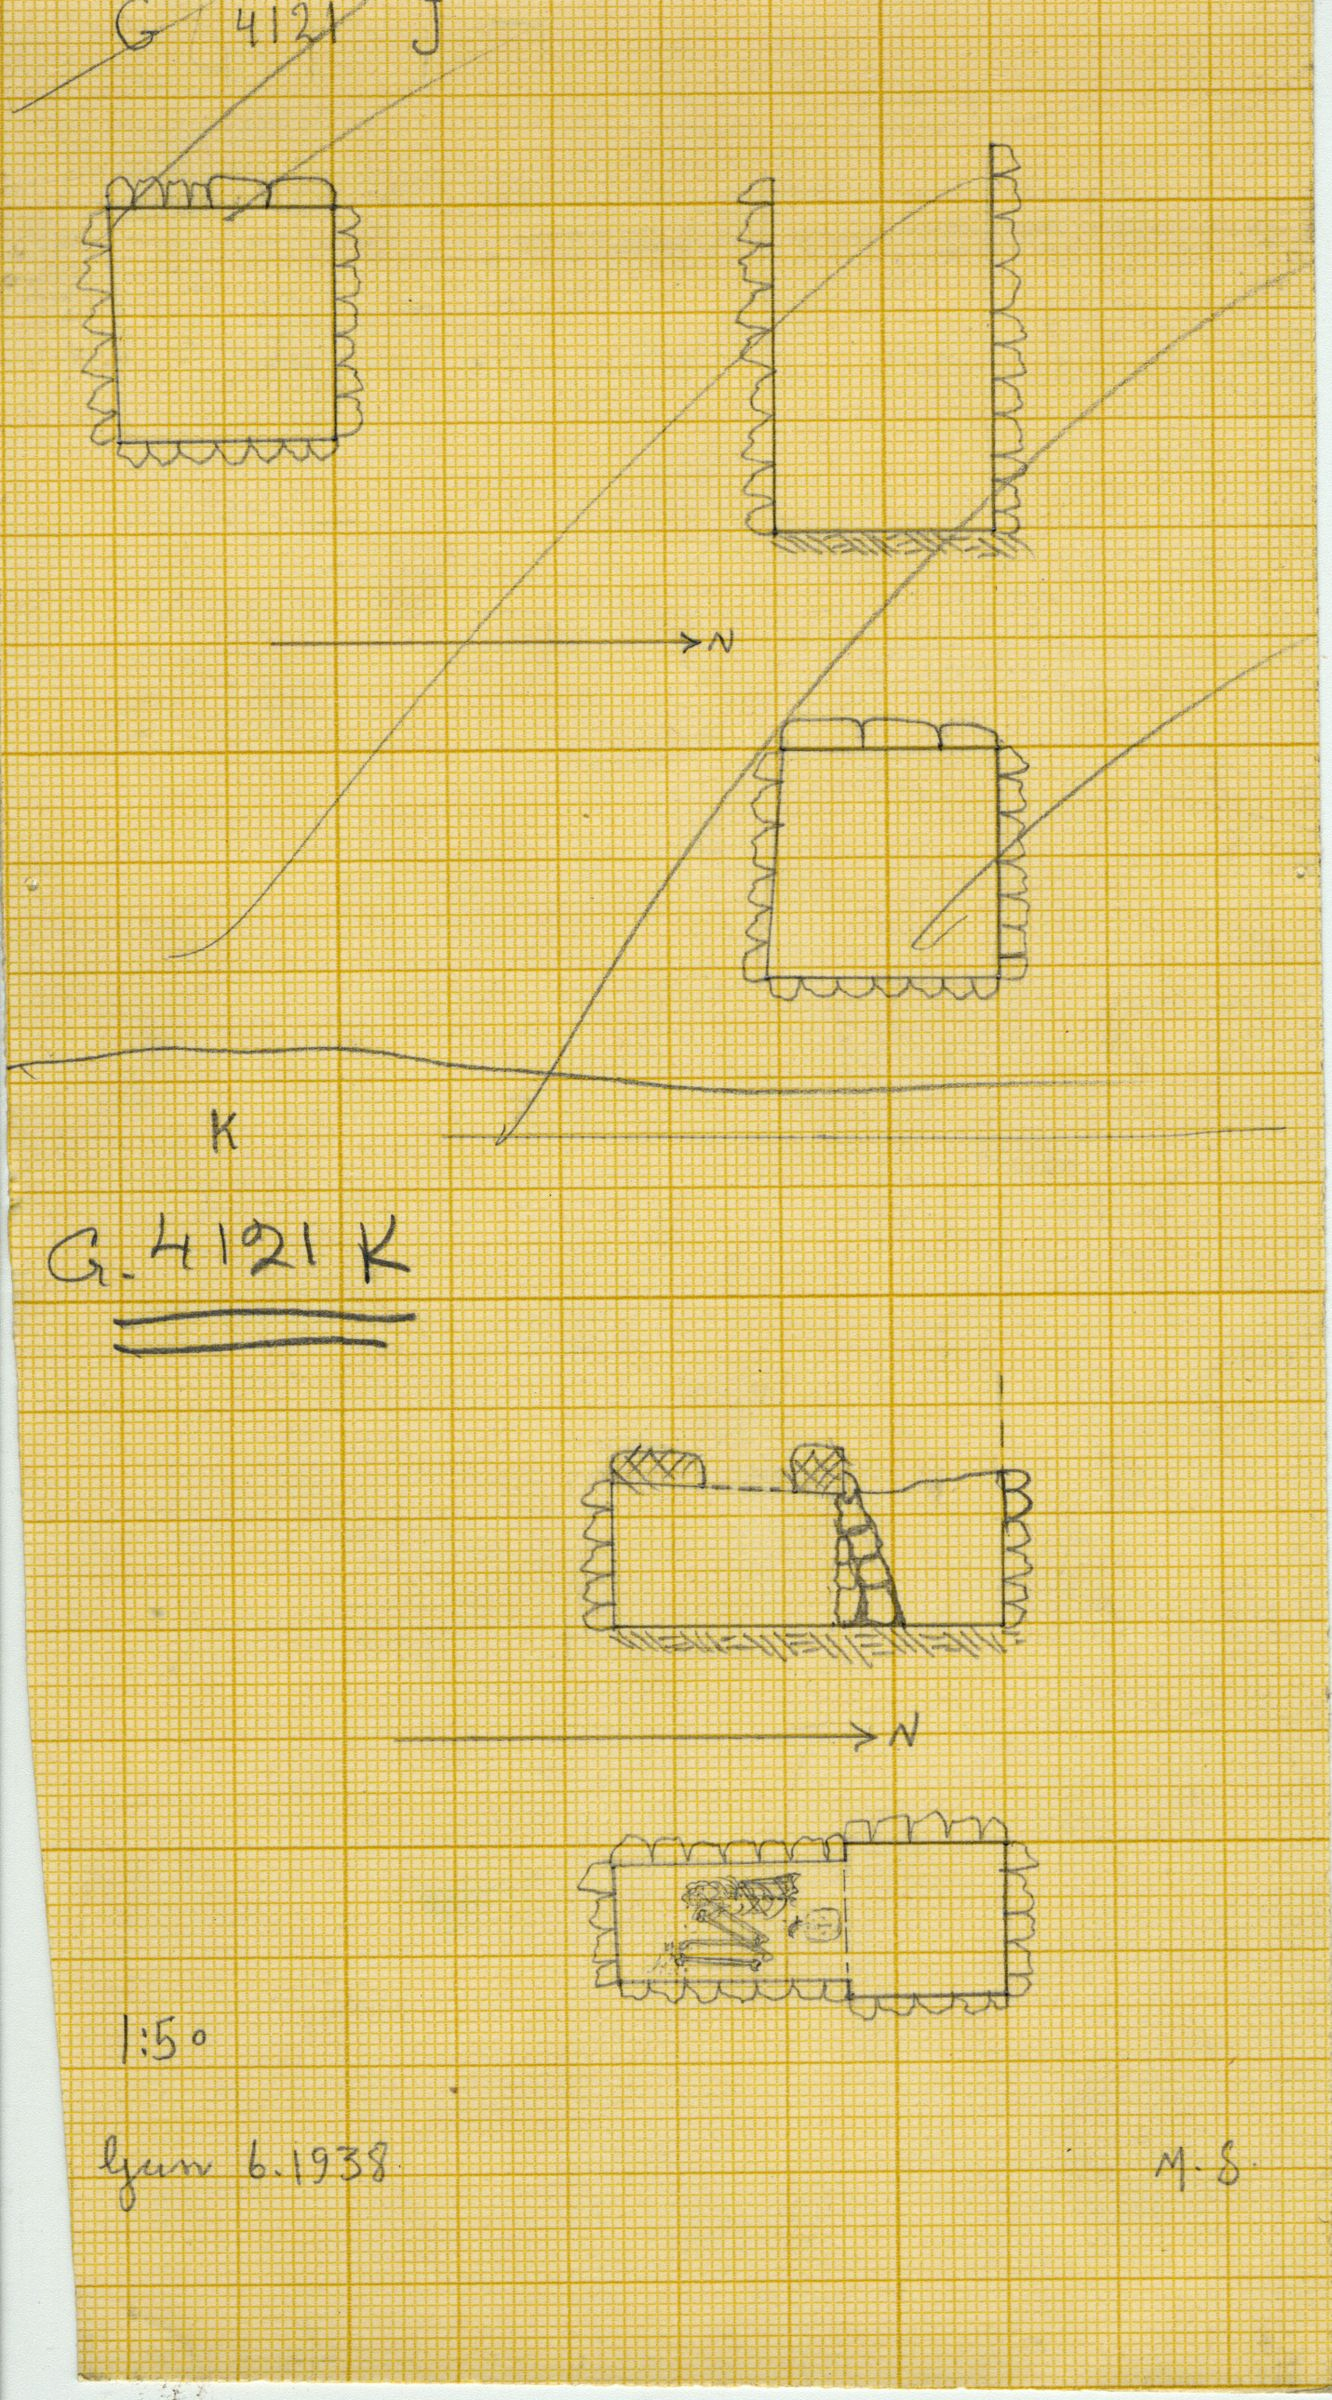 Maps and plans: G 4121, Shaft J and K